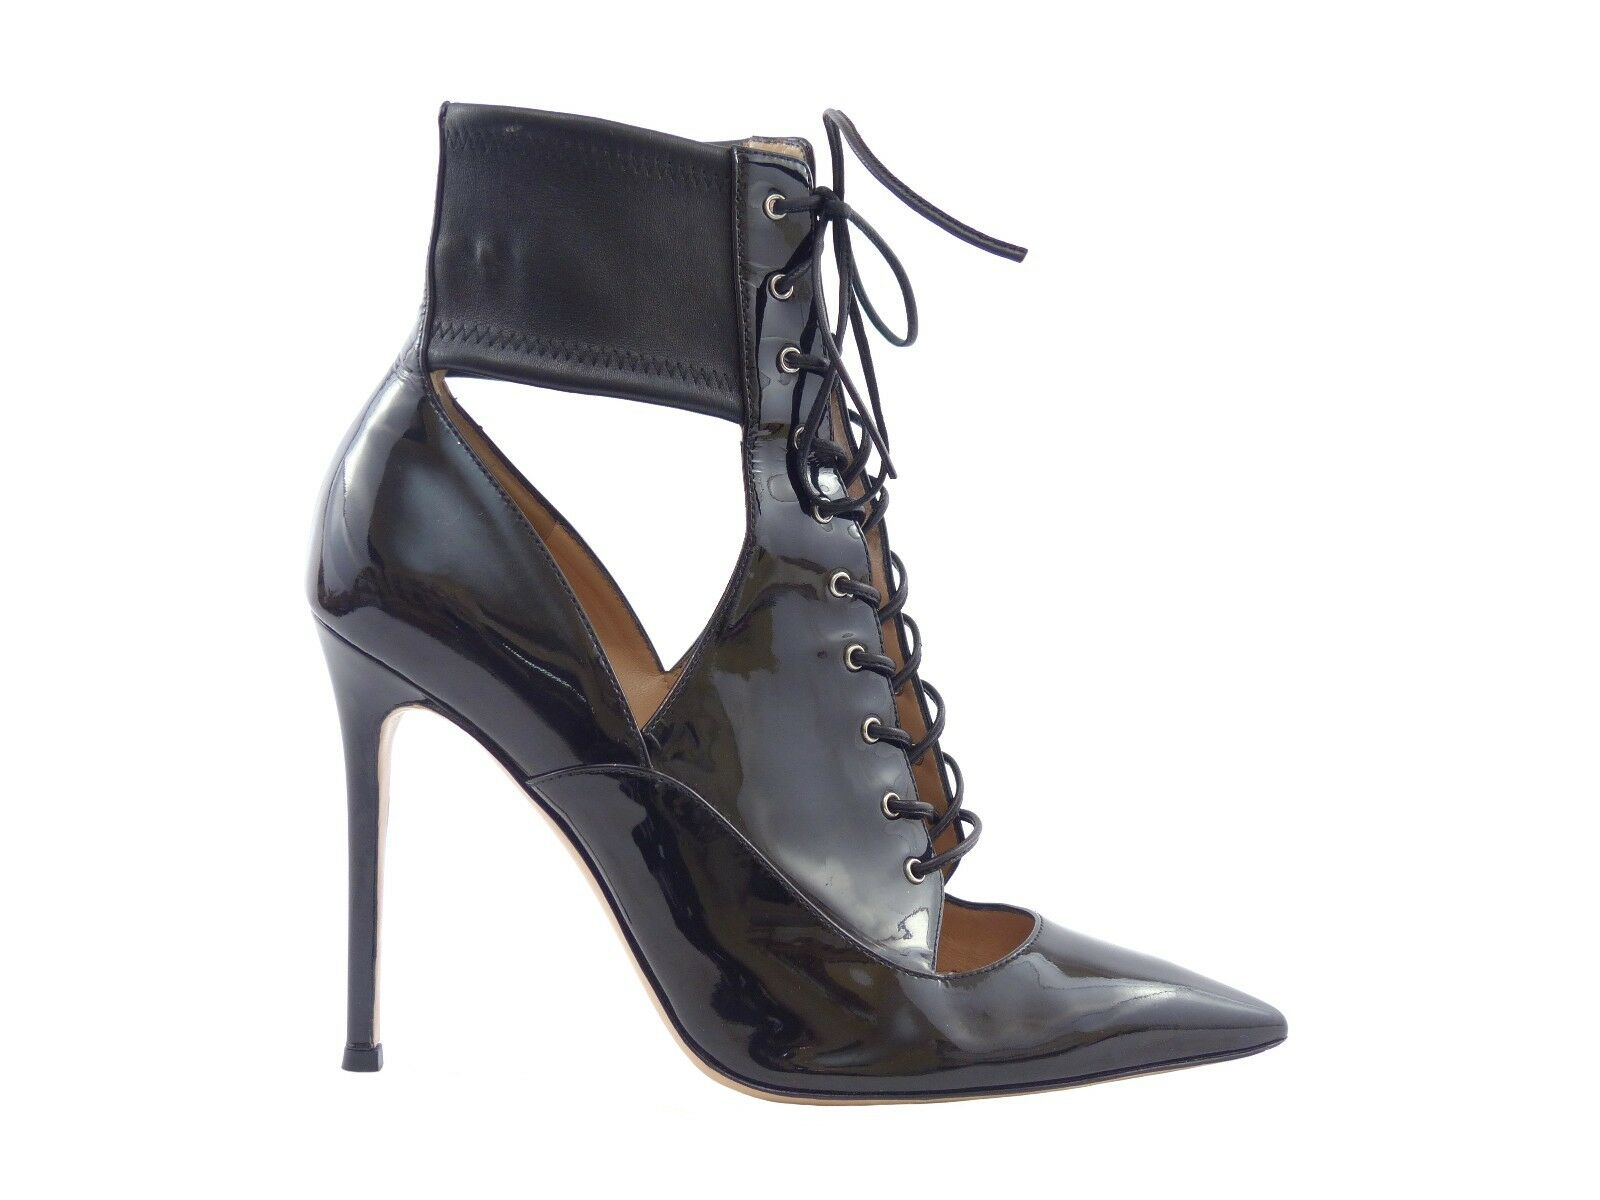 Gianvito Rossi Rossi Rossi Lace-up Black Patent Leather Ankle Boots 8b19d6